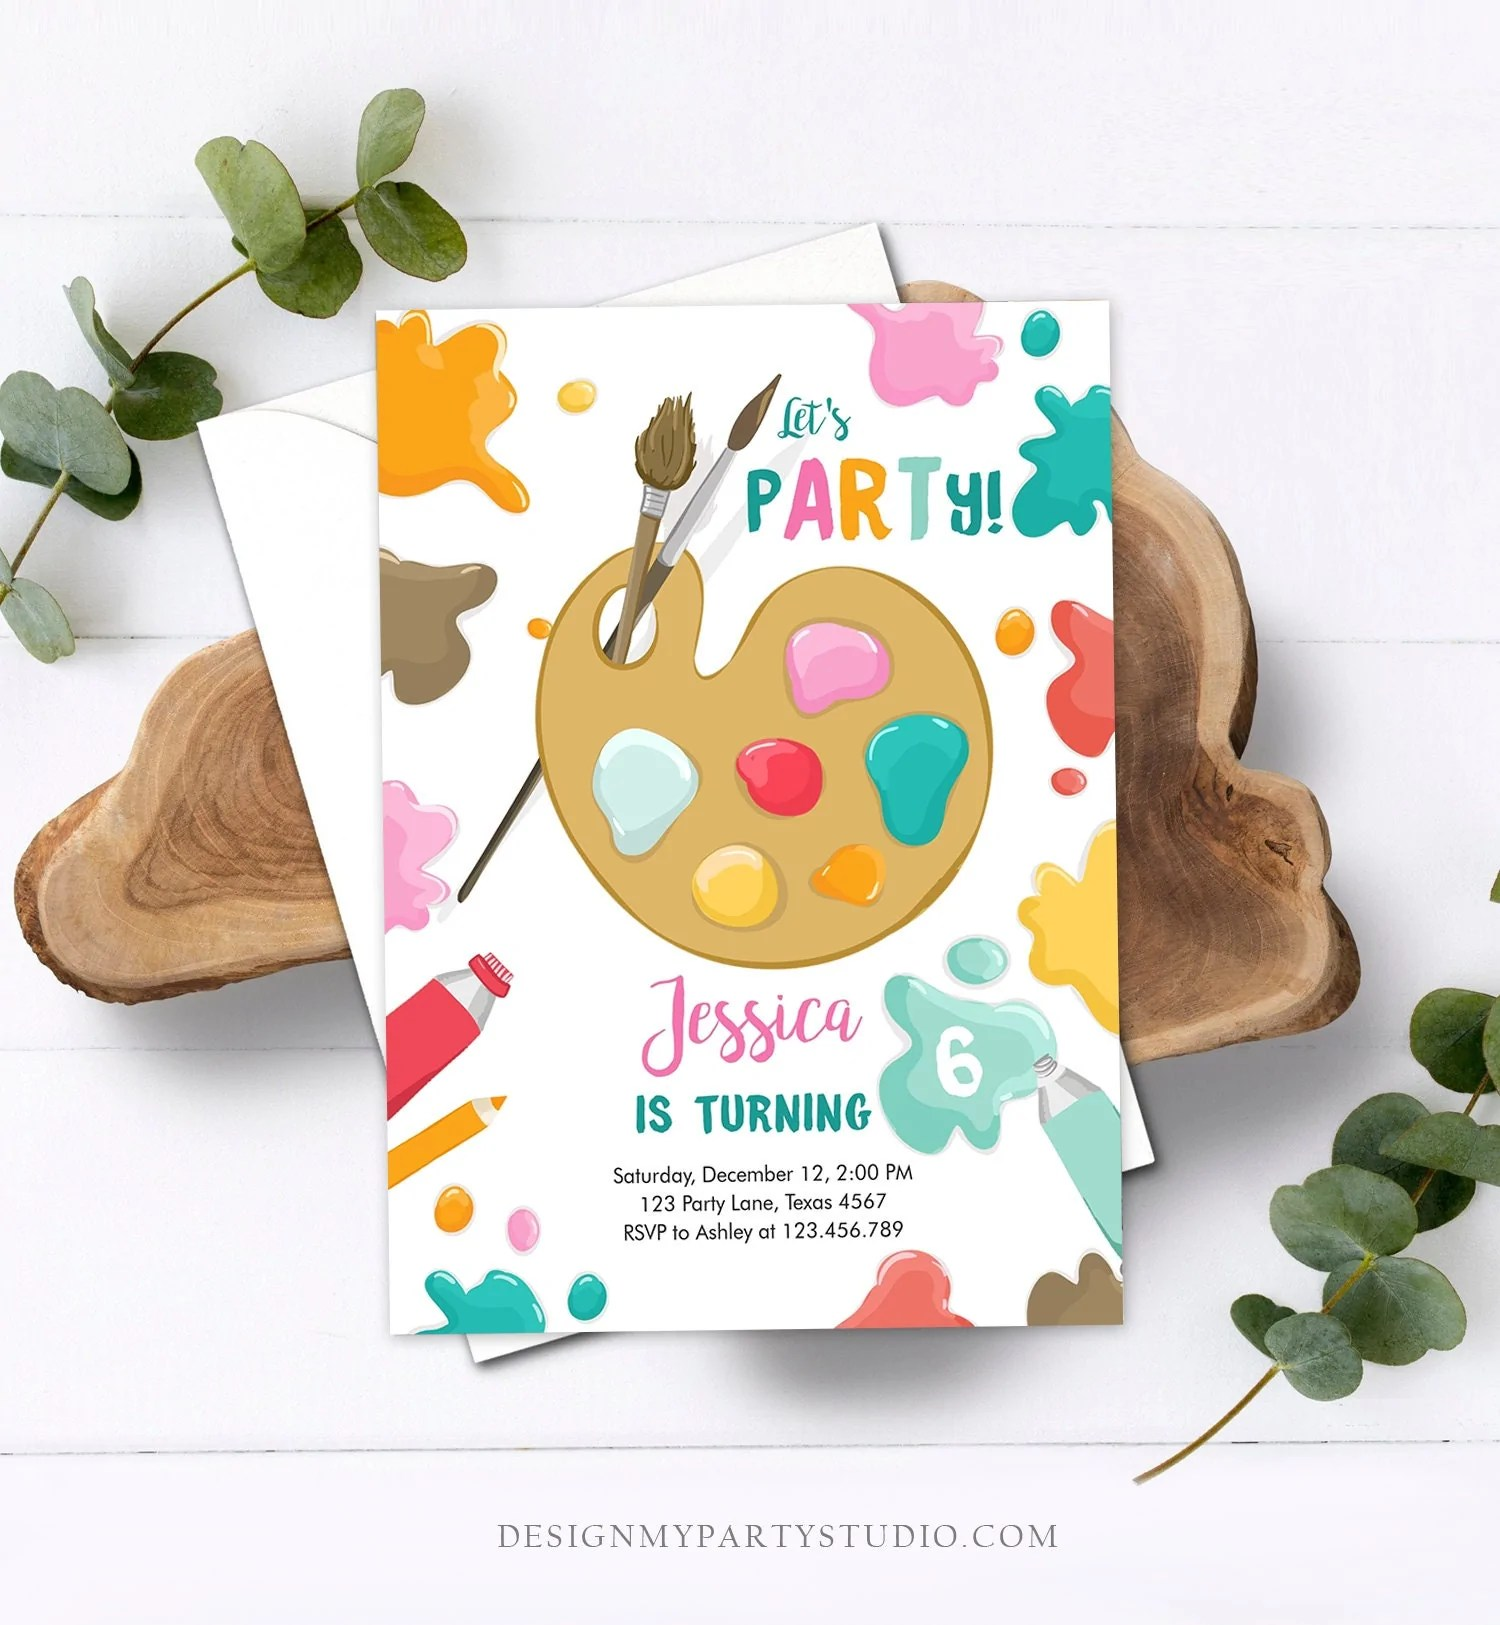 editable painting party invitation art party birthday invite girl pink paint craft party download printable template digital corjl 0319